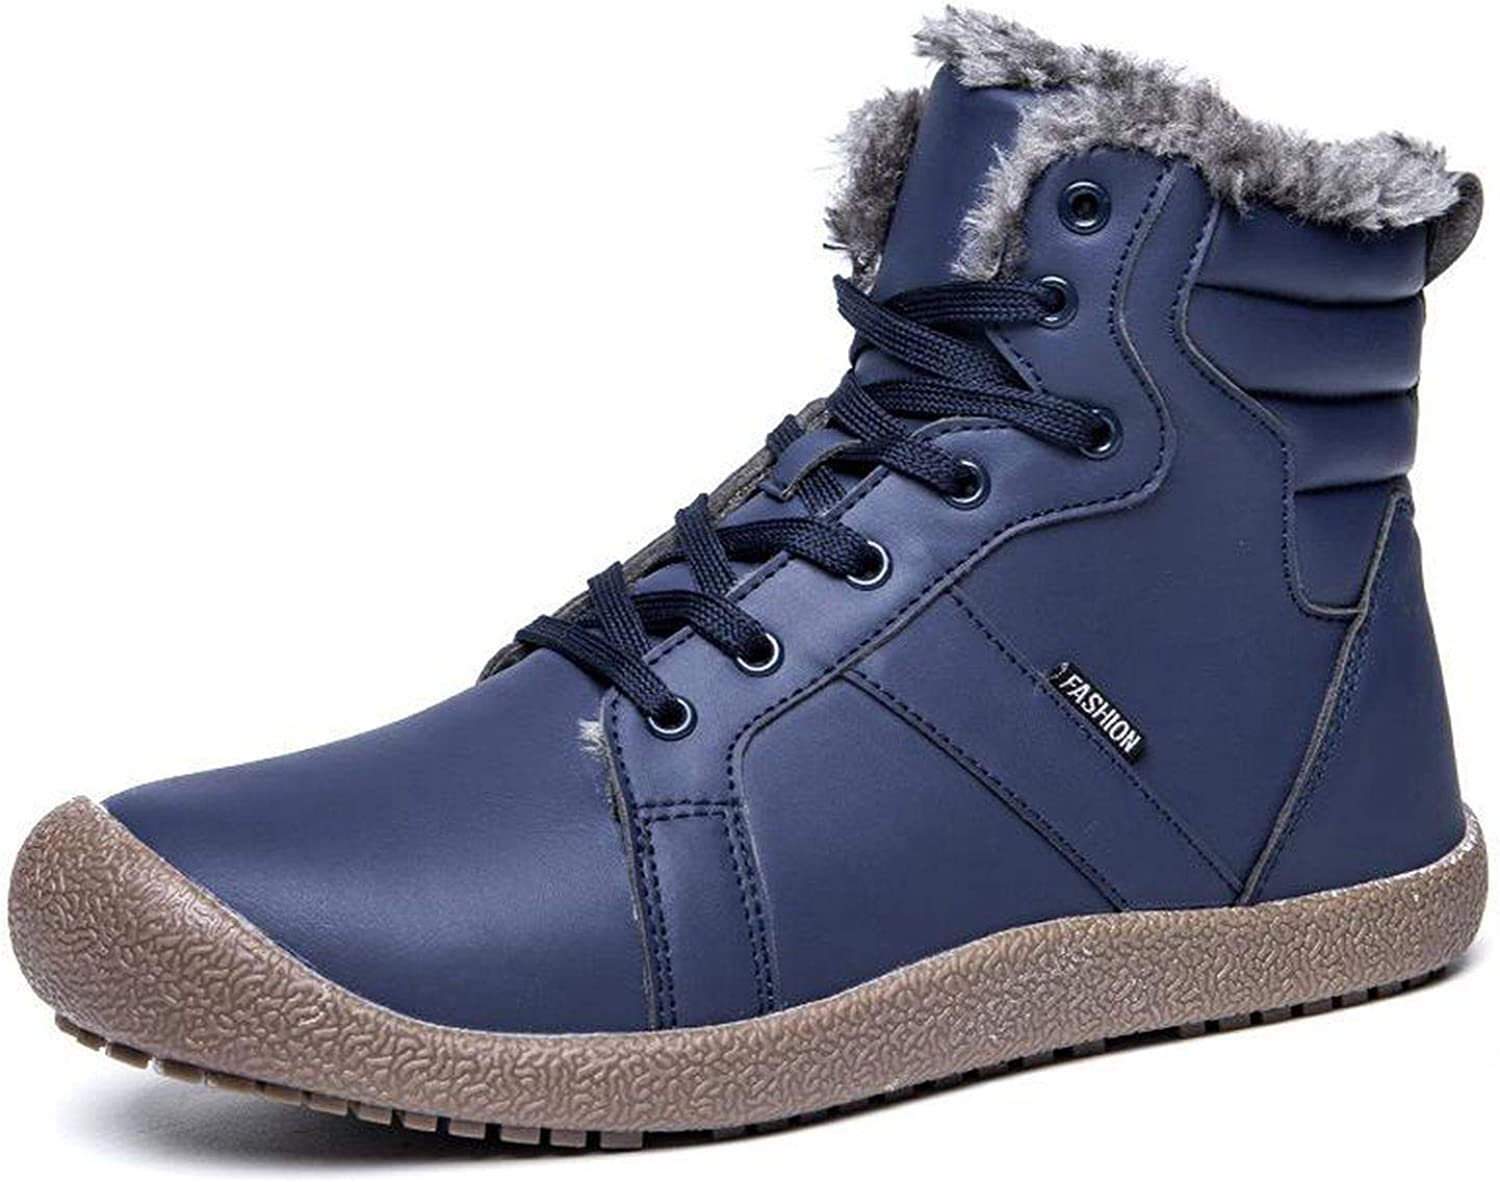 Men Winter Boots Male Snow Ankle Boots Waterproof Warm Fur Casual Boot shoes